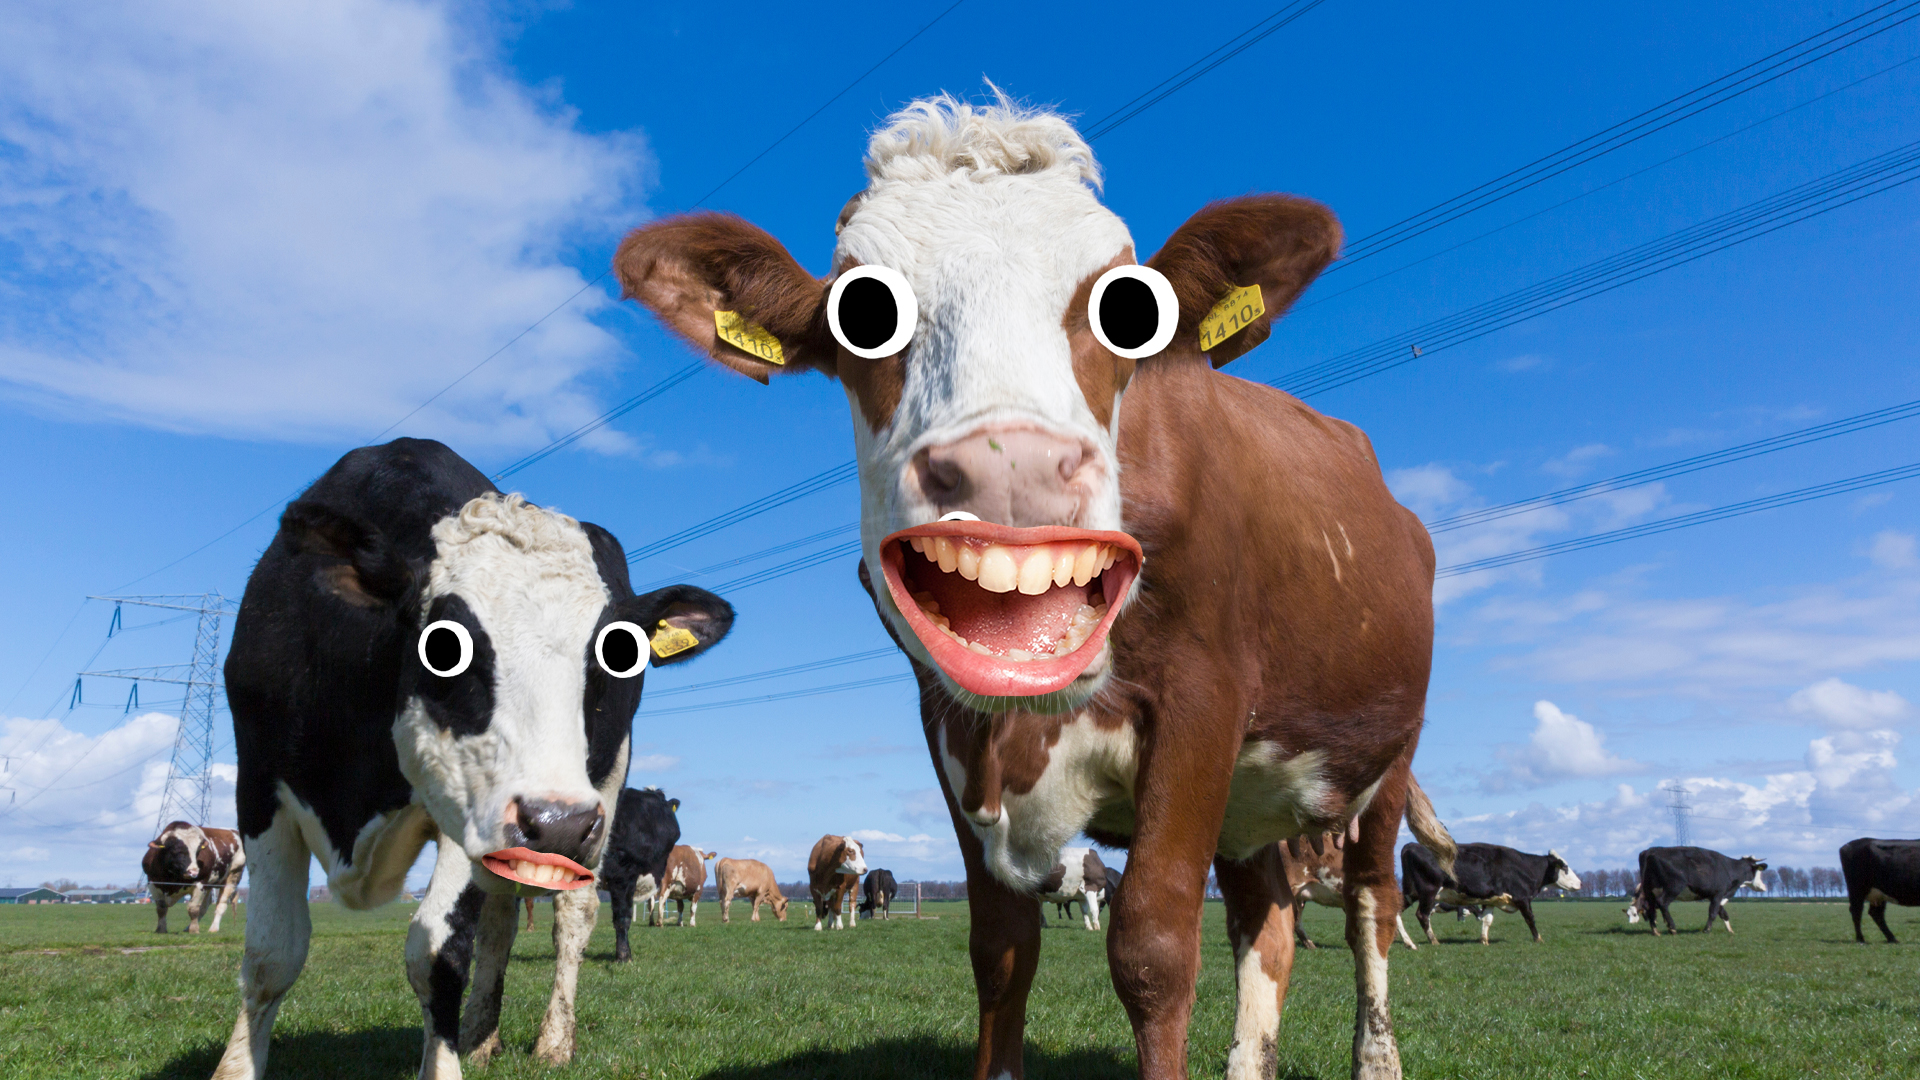 Laughing cows